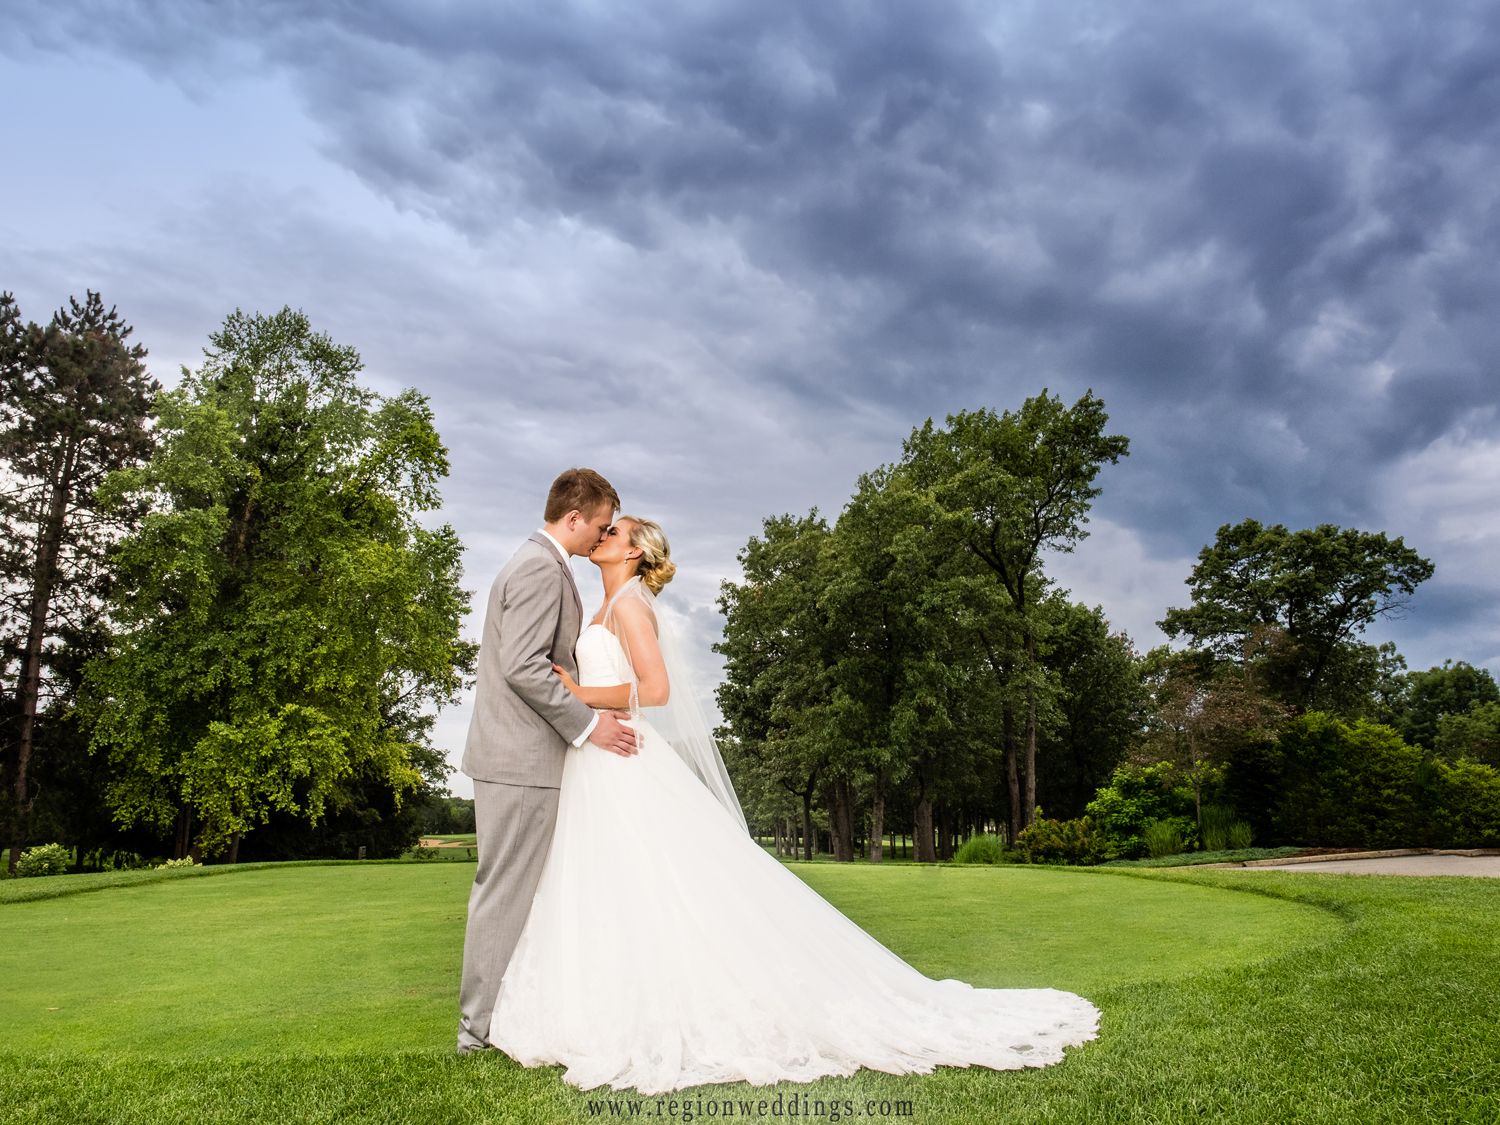 A dramatic sky wedding photo at Sandy Pines Golf Course in Demotte, Indiana.